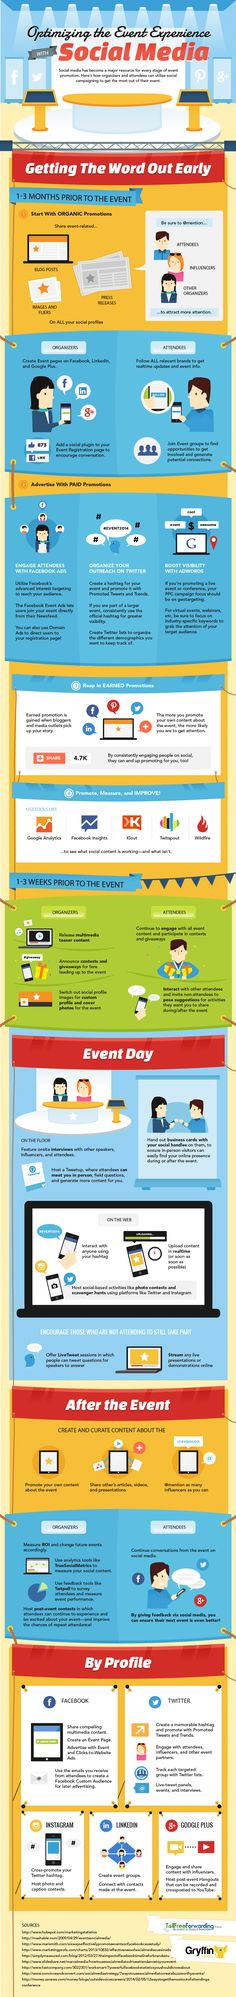 Optimizing the Event Experience with Social Media #infographic #SocialMedia #Pinterest #Facebook #Twitter #Google+